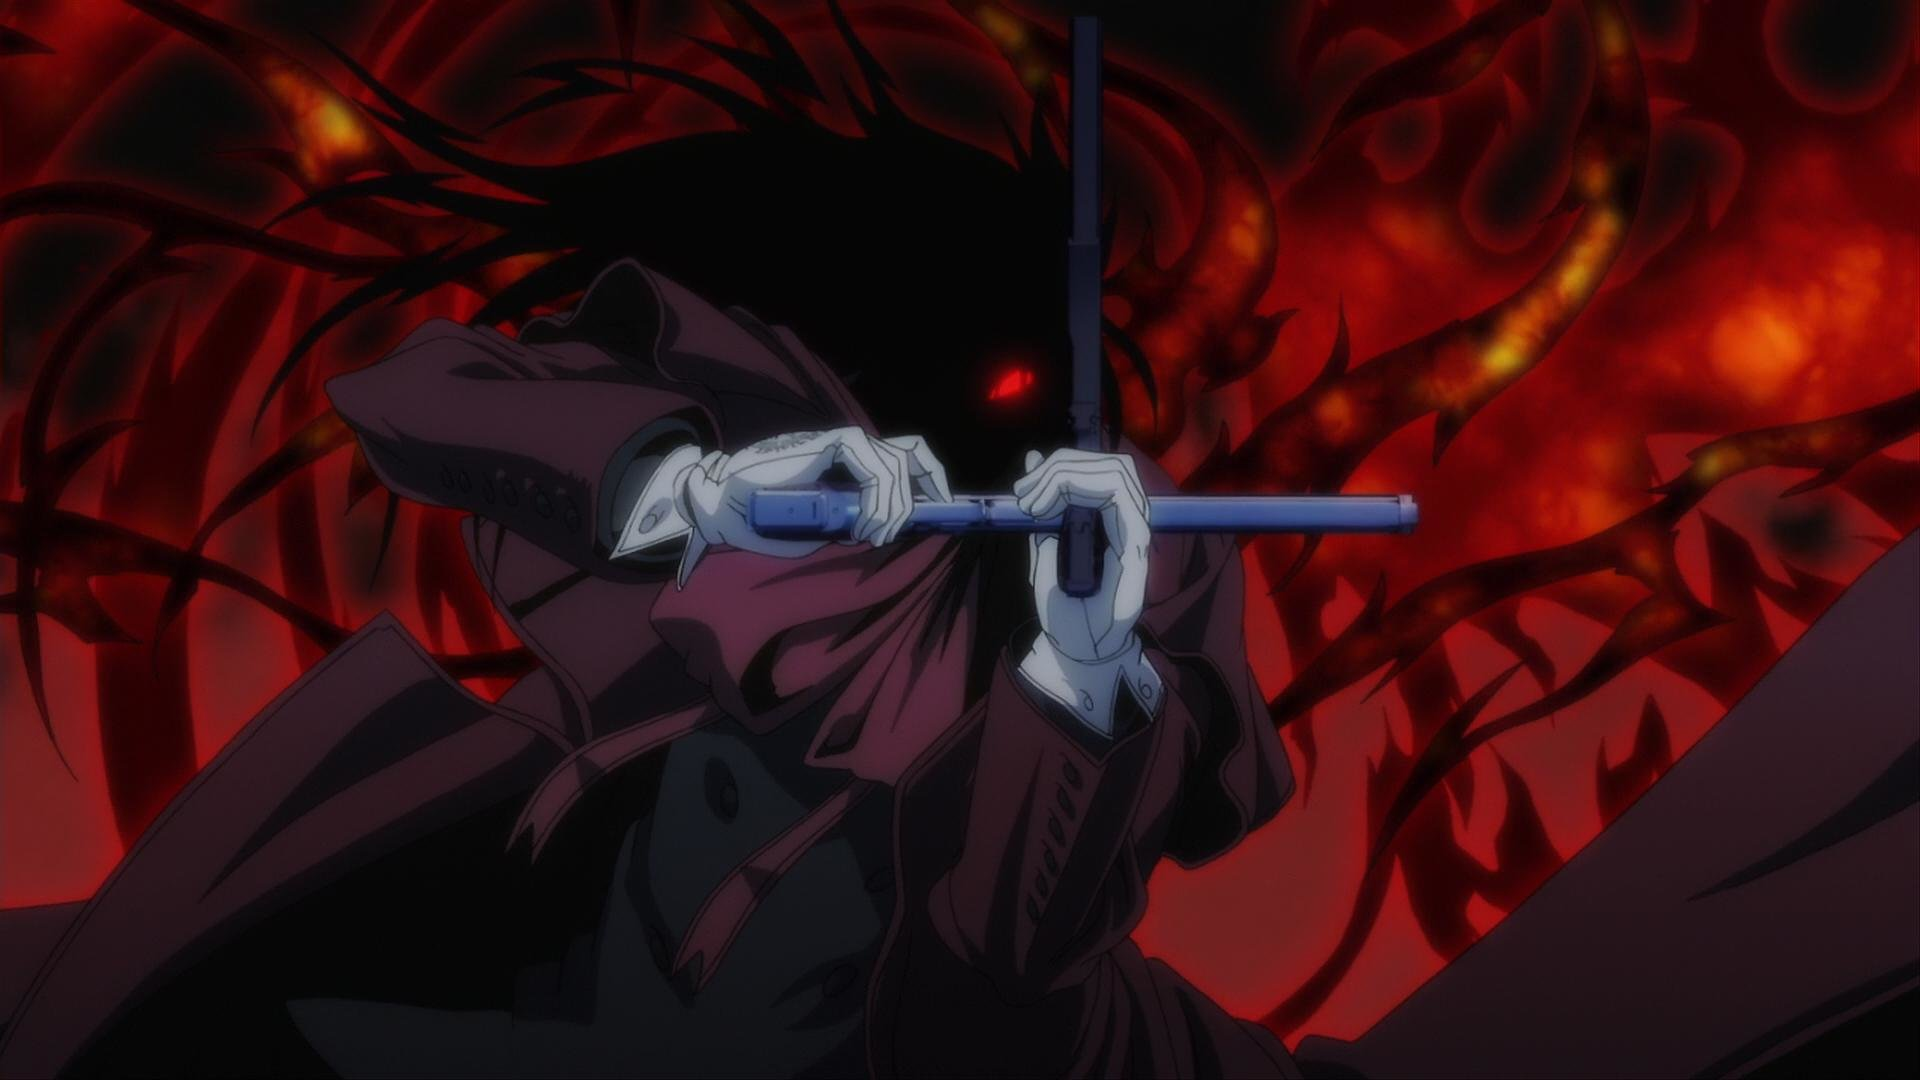 Download full hd 1920x1080 Alucard (Hellsing) PC wallpaper ID:329677 for free